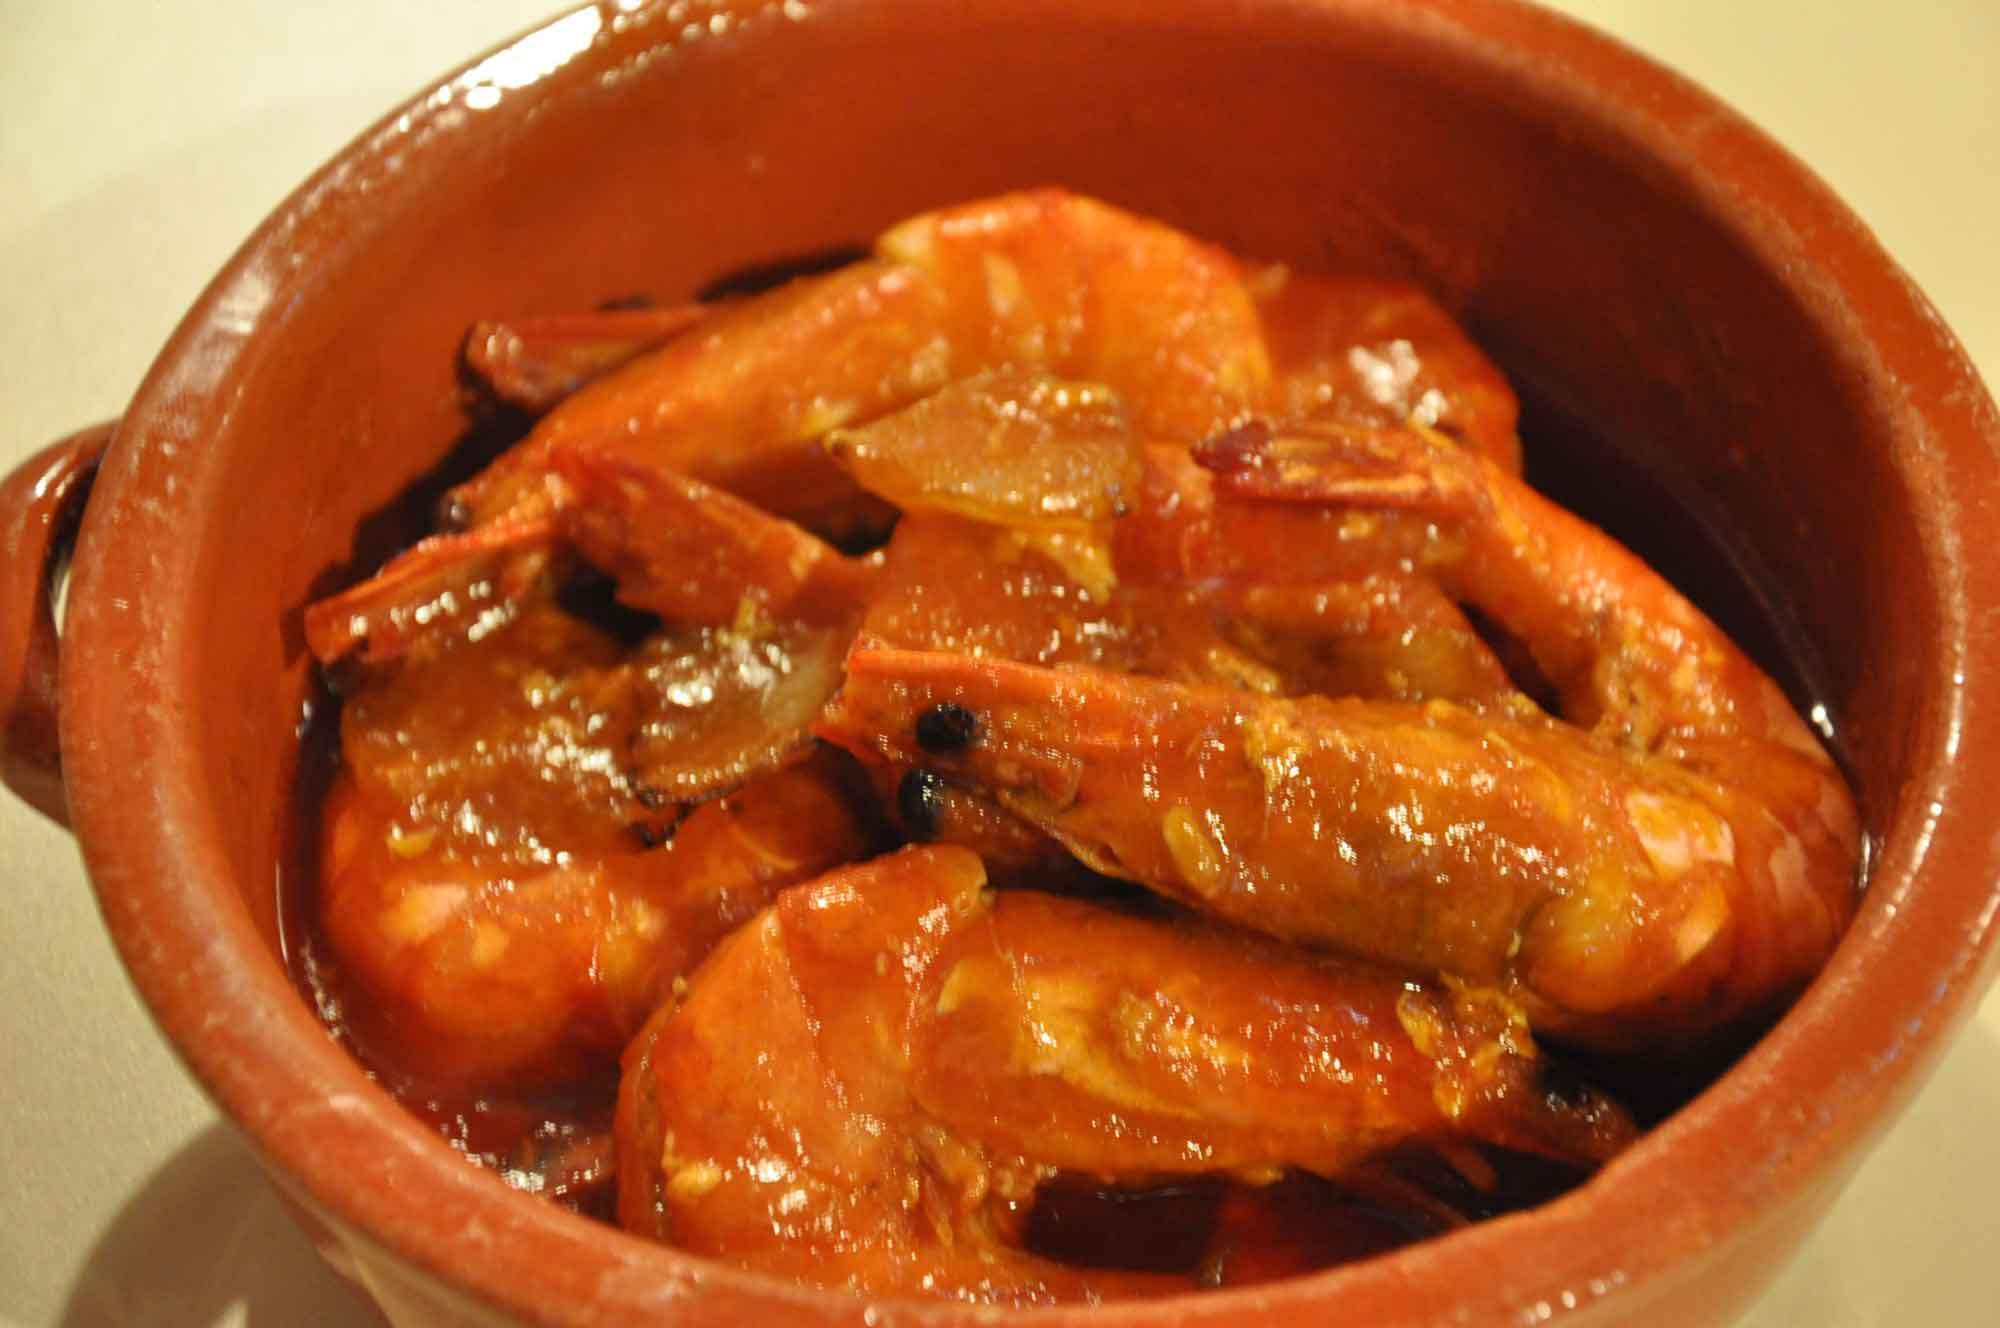 Belos Tempos Macau spicy prawns in tomato